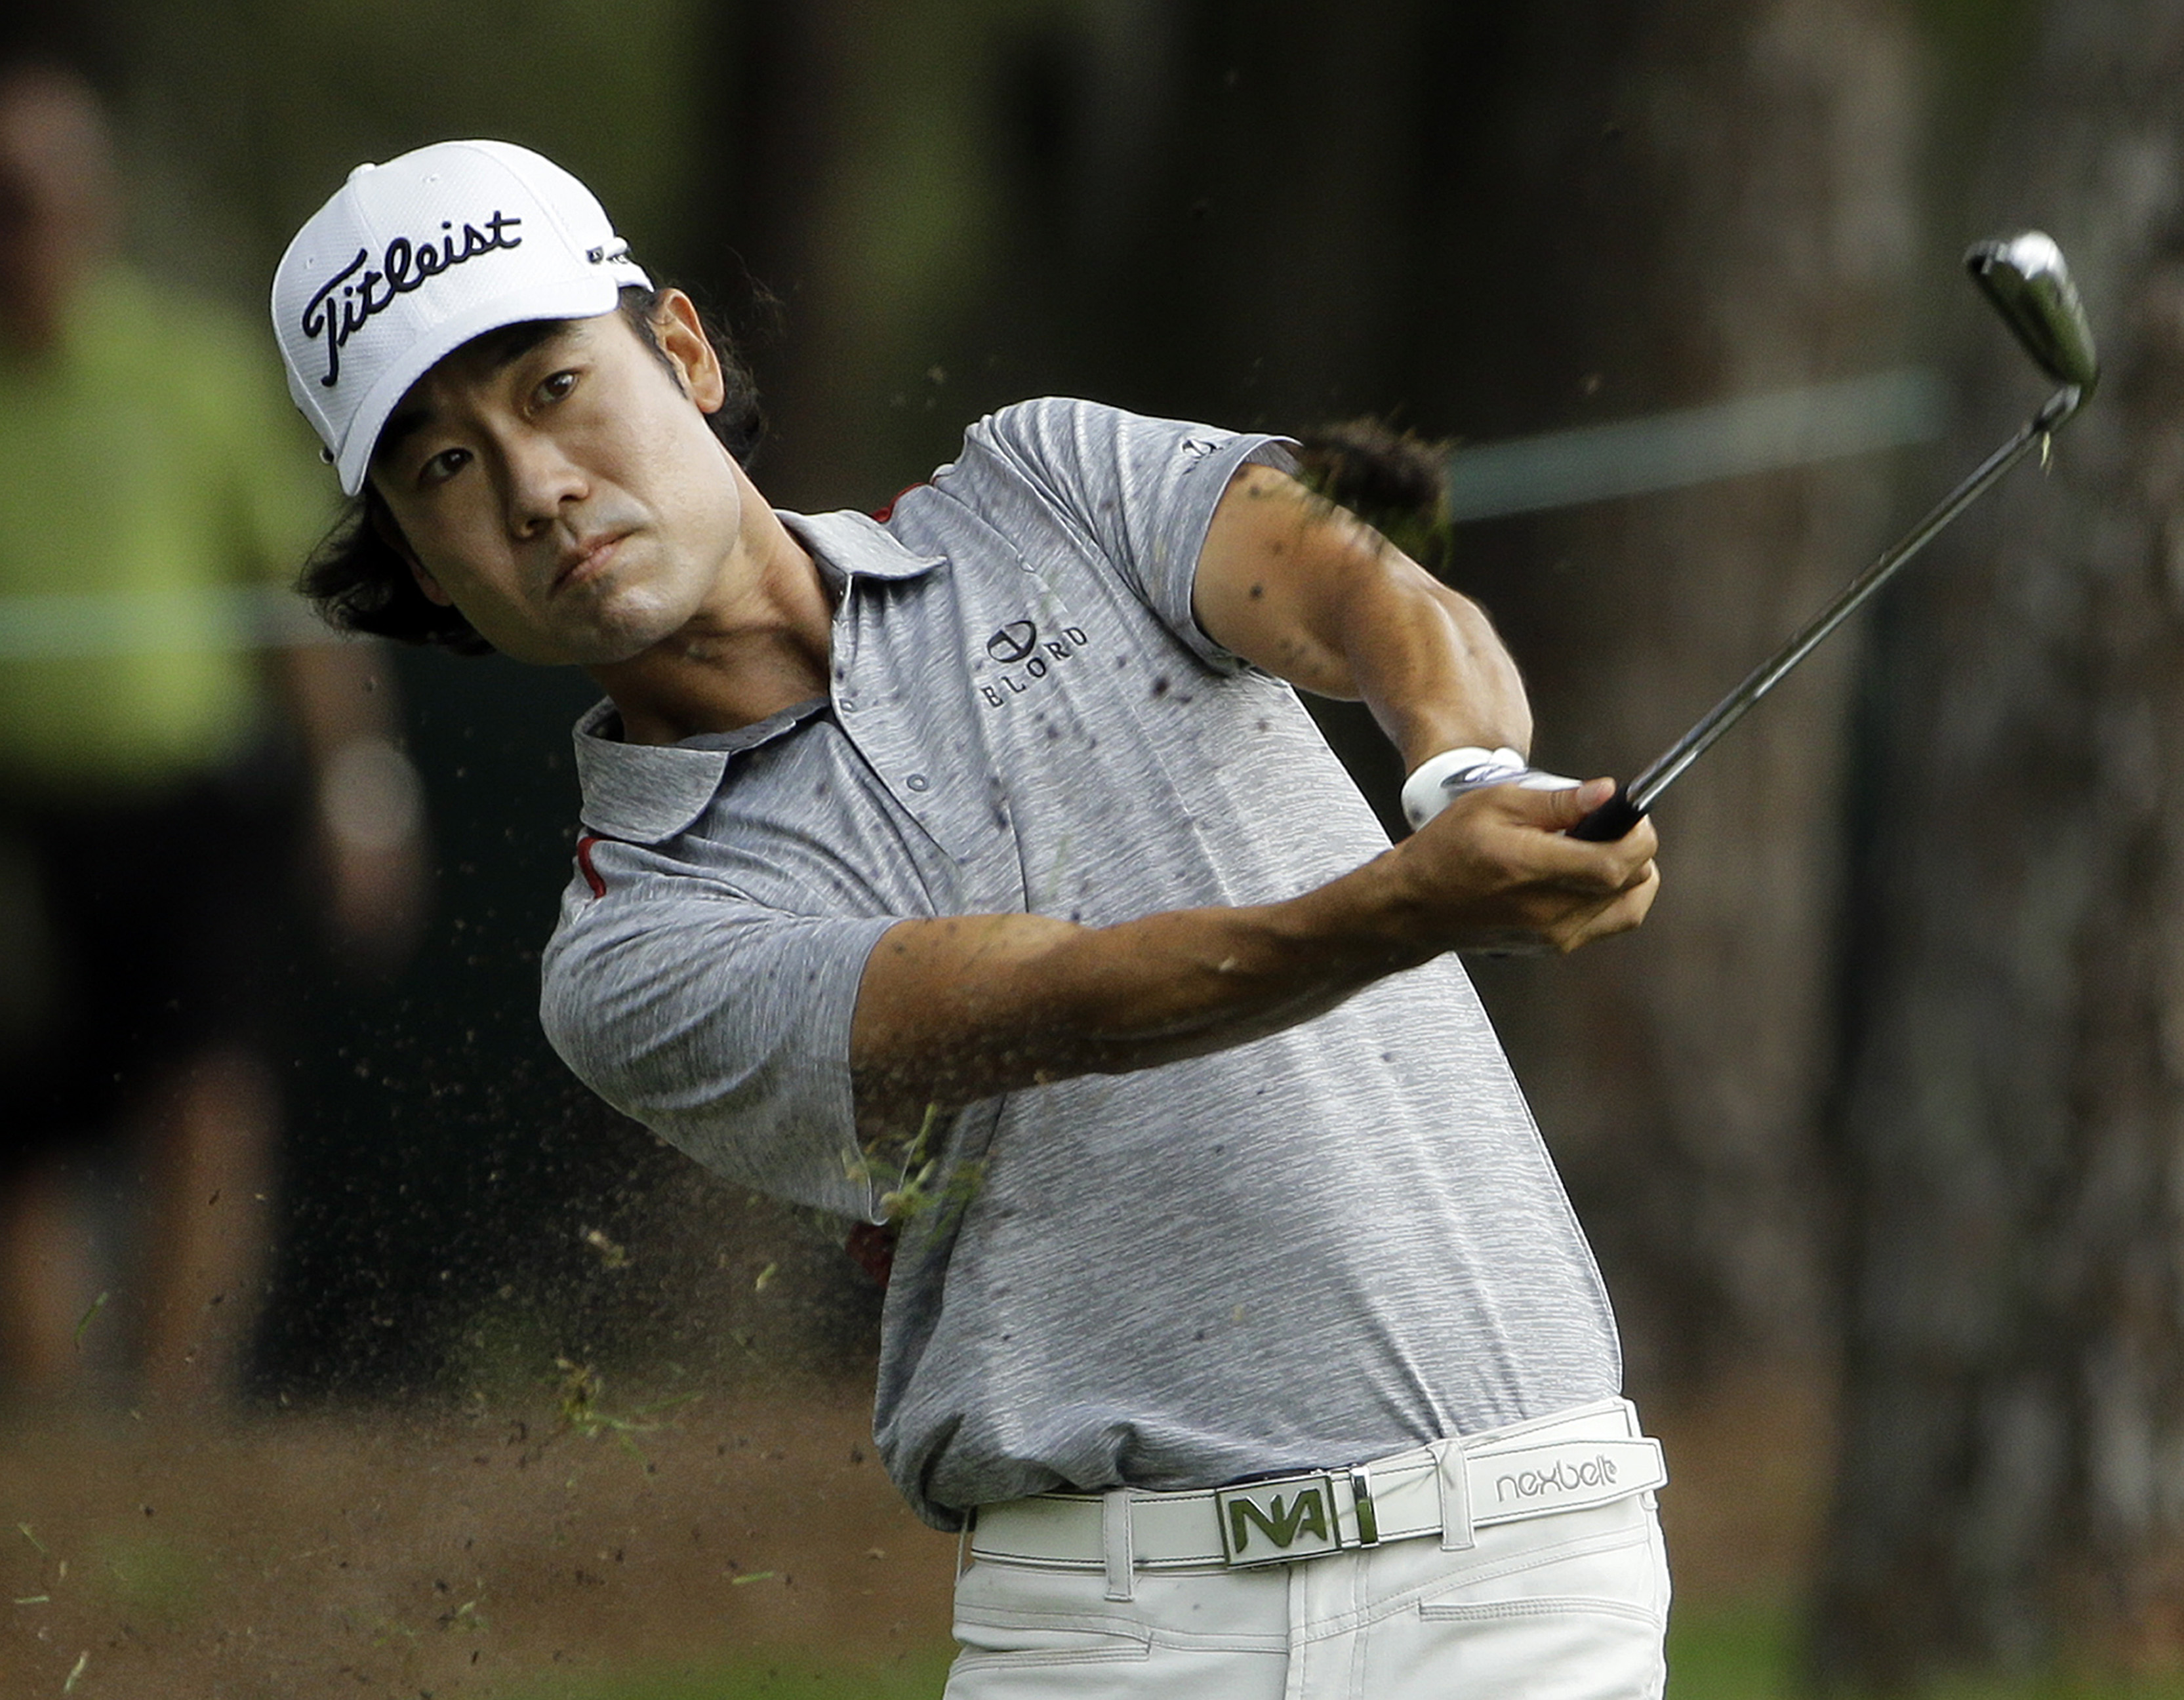 Bay Hill is a must-play, says Kevin Na, because of the presence of the King.